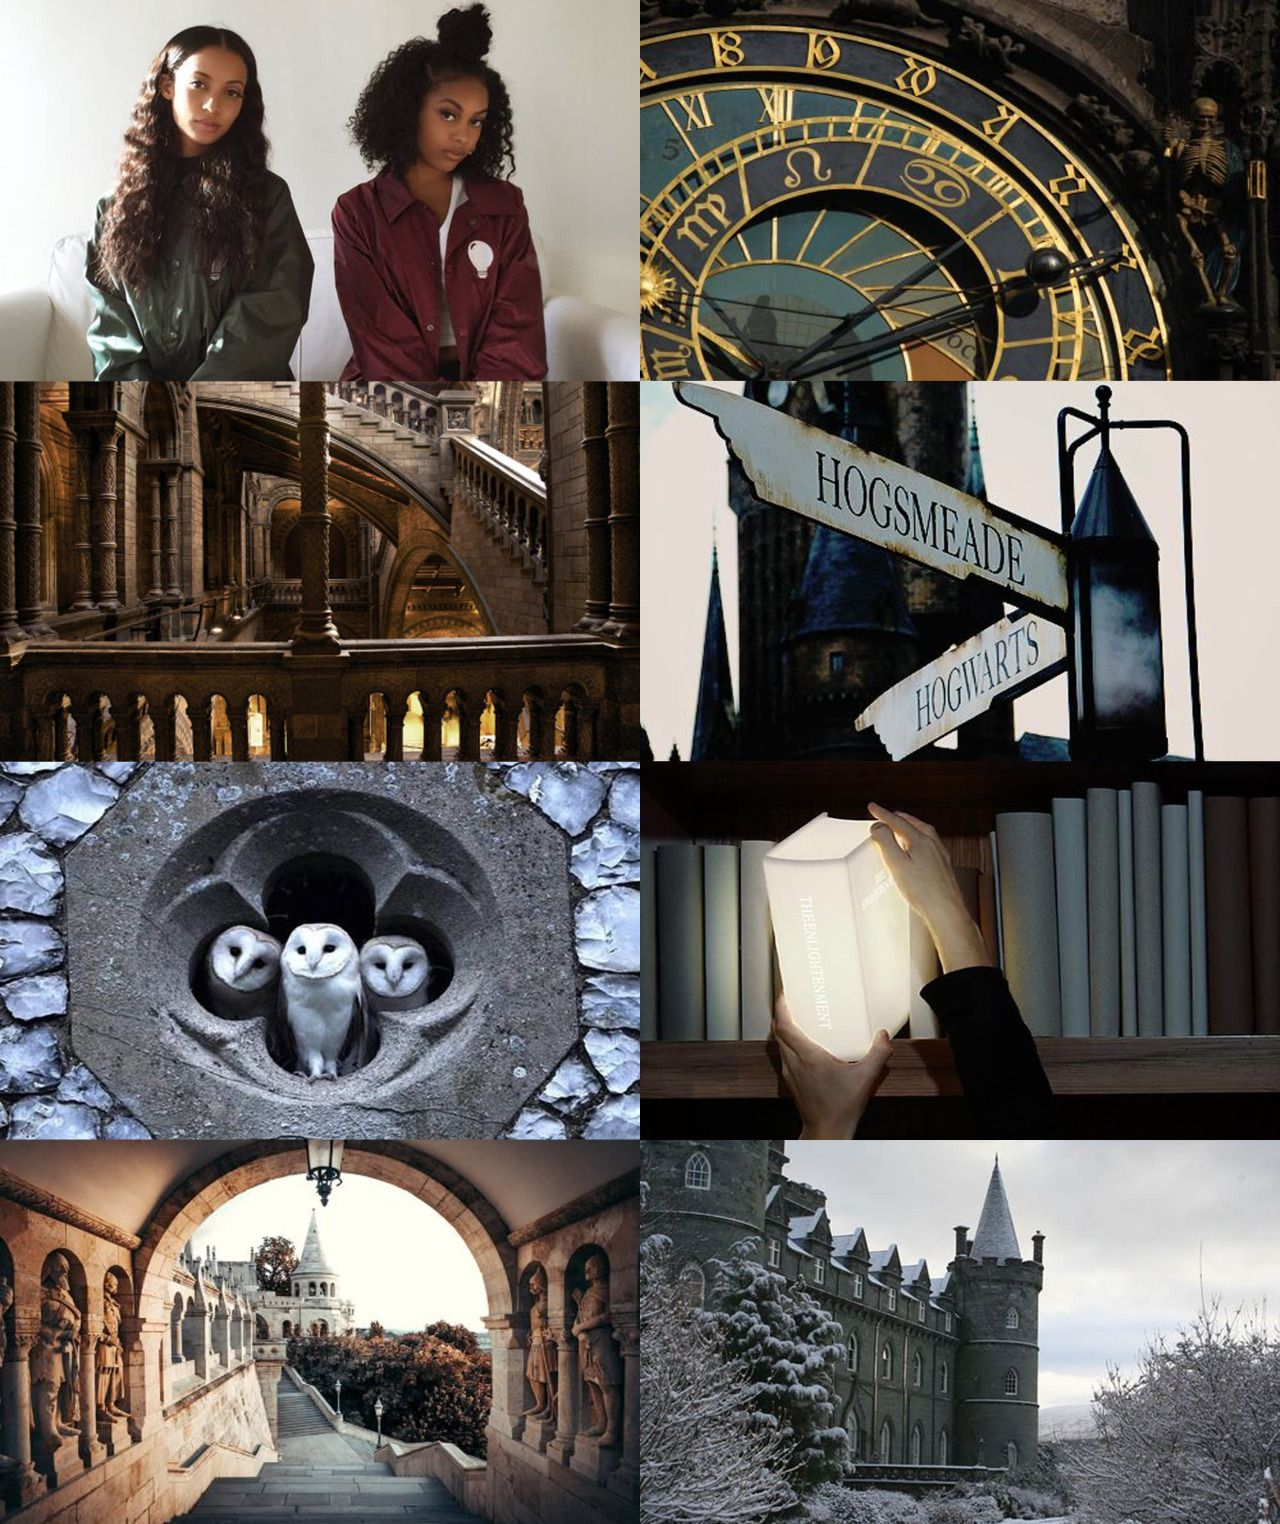 wizarding schools around the world // Hogwarts 2/2: There is also an owlery, which houses all the owls owned by the school and those owned by students. The three highest towers are the Astronomy Tower, the Ravenclaw Tower, and the Gryffindor Tower. There are 142 staircases, which are known to move, in the massive castle, which is set upon huge rocks above a magnificent lake.